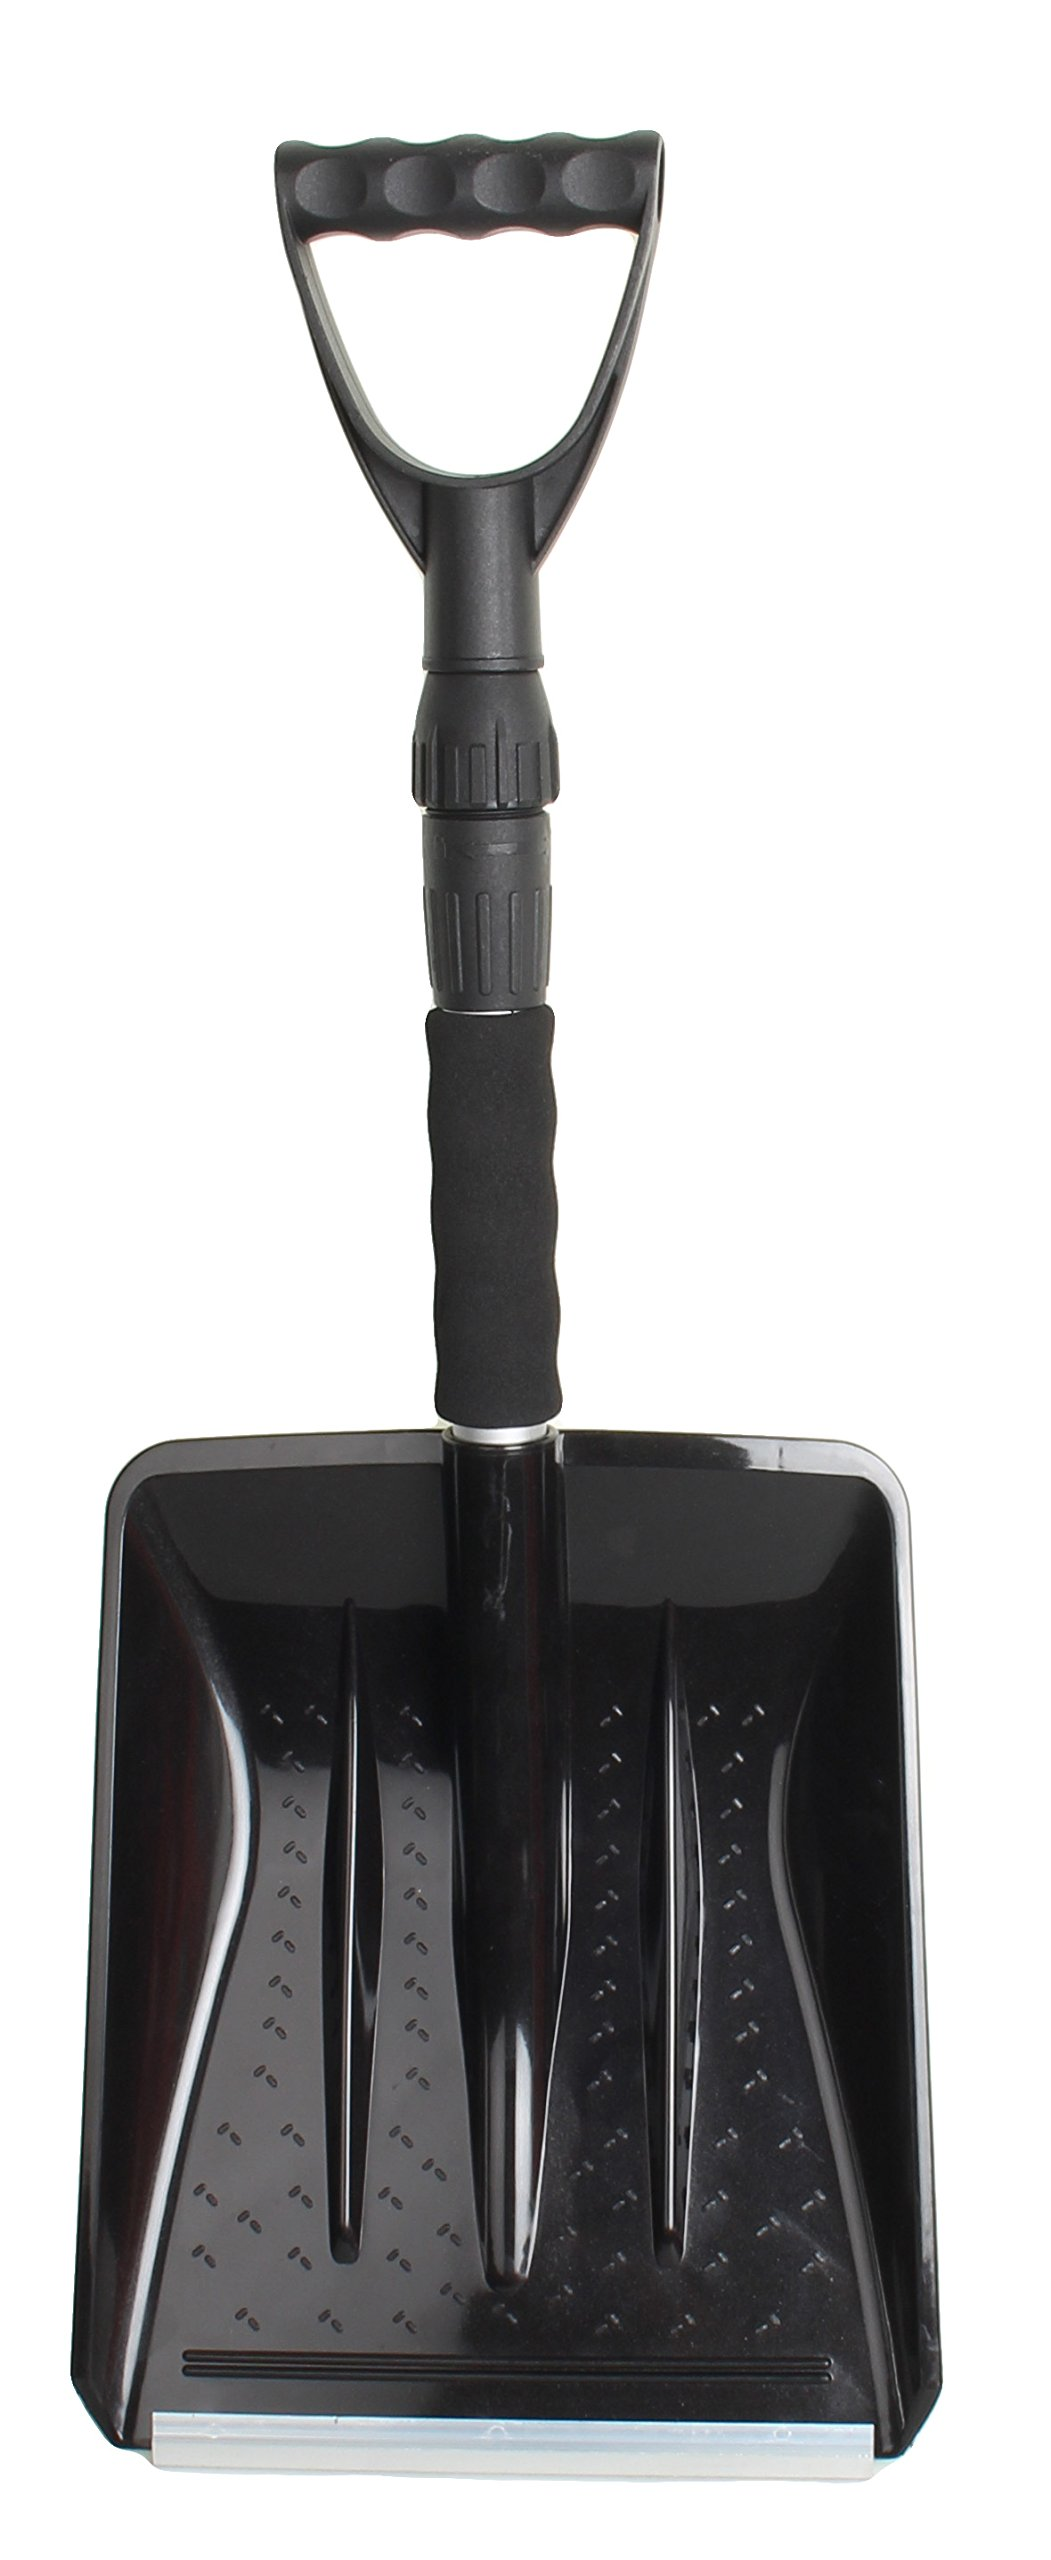 Compact Auto Emergency Snow Shovel Perfect for cars, trucks, and SUVs (Black)